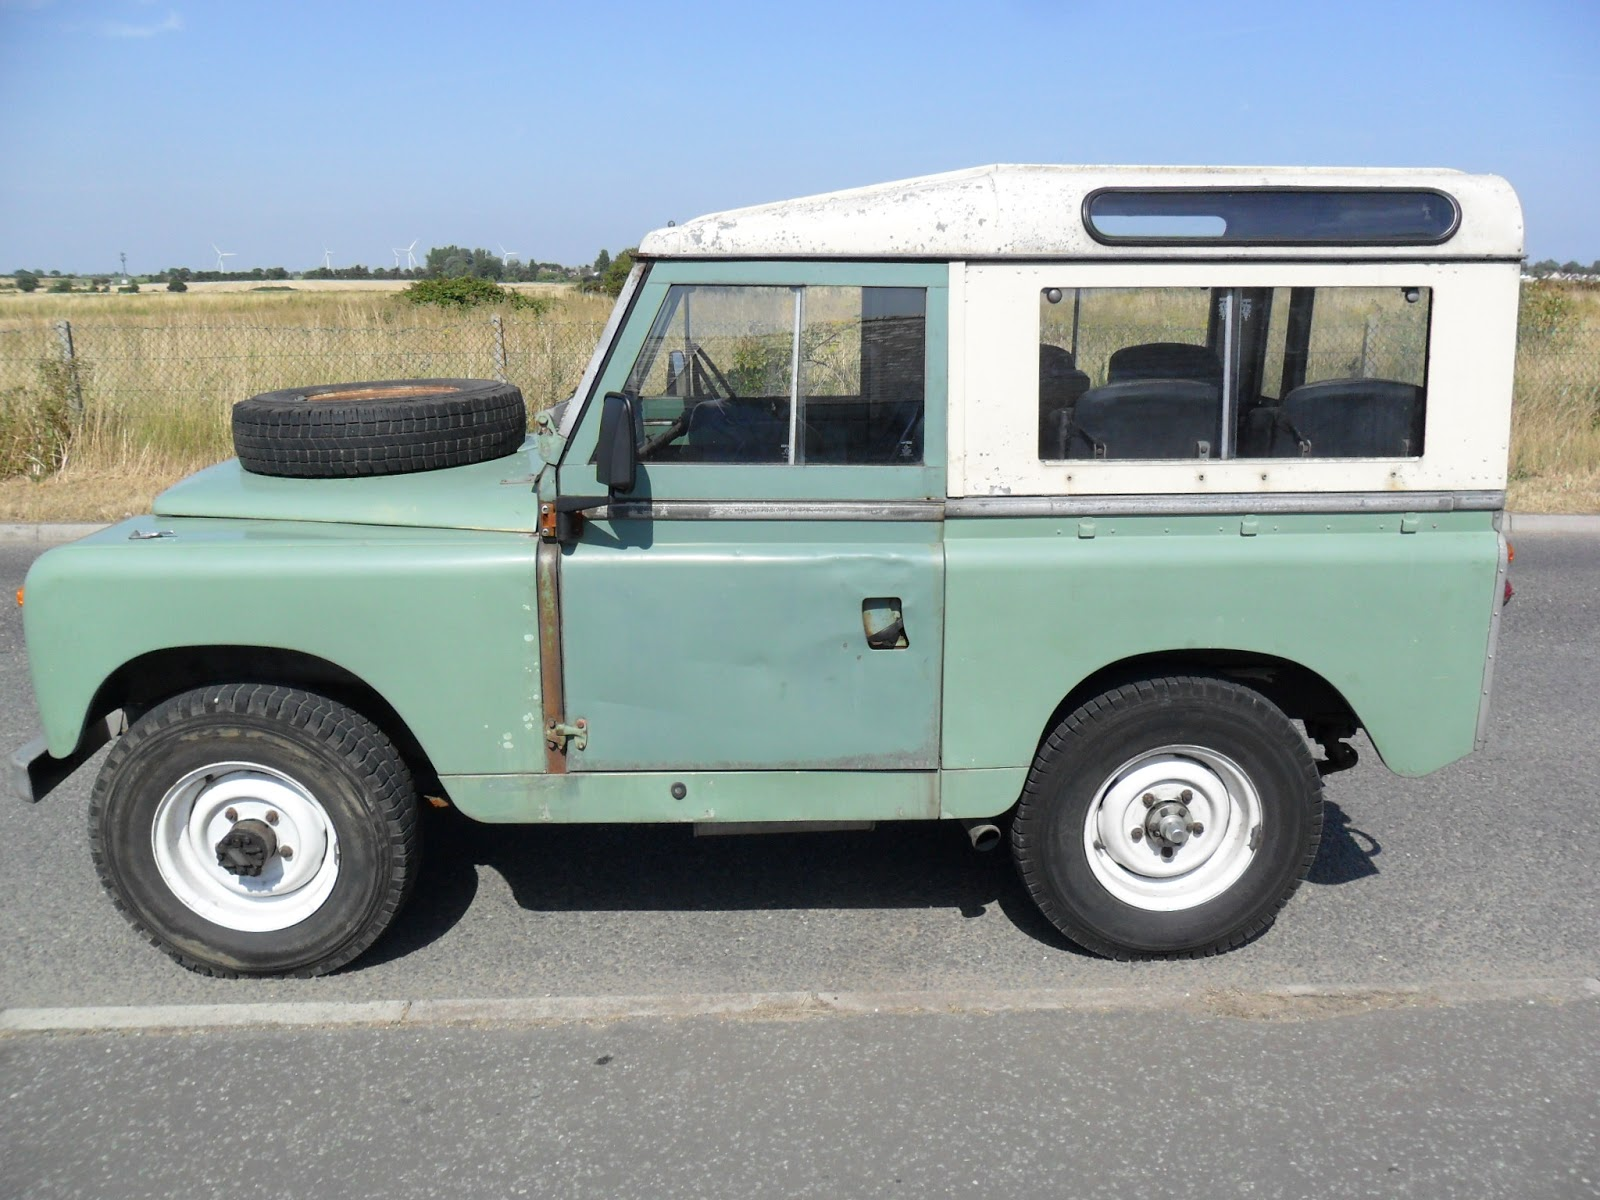 Laughs And Lashings Aaaaand A 1968 Land Rover Series 2 A Truck